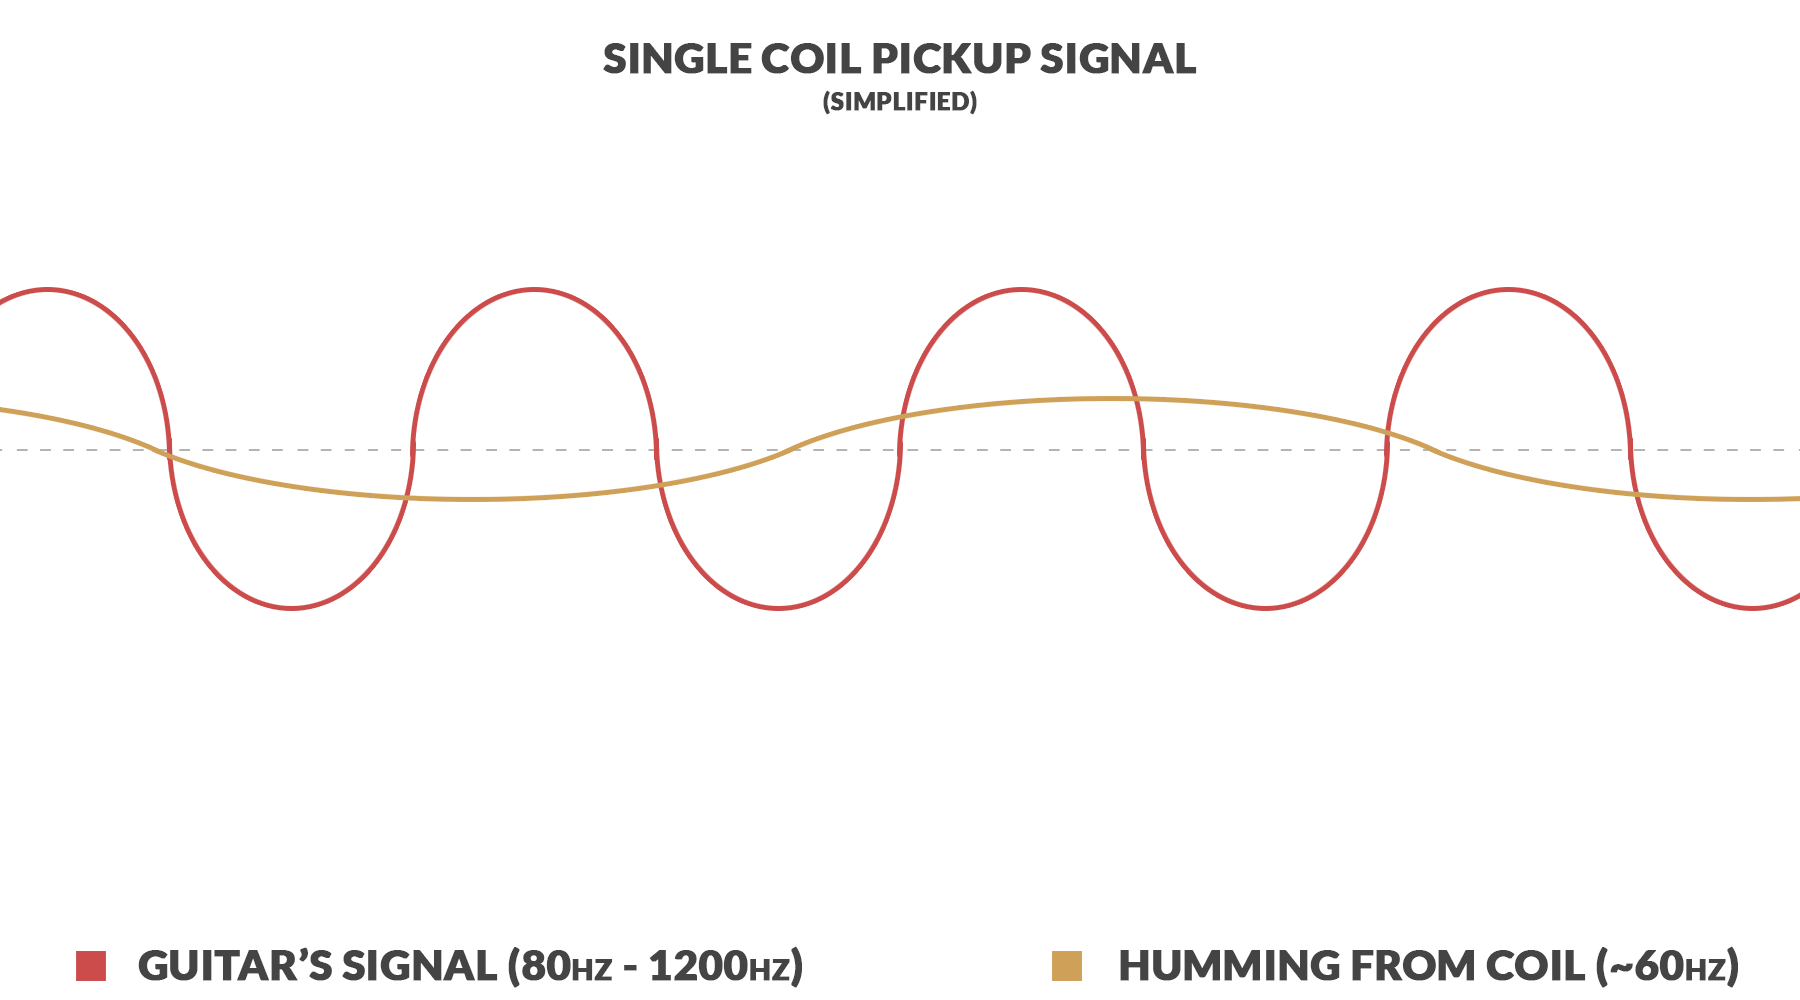 Signal Phase Switch Mods Guide Electric Herald Lipstick Guitar Pickup Wiring Diagrams The Guitars Is Converted To Electrical Frequencies But Its Not Alone Process Of Magnetic Induction Creates A Low Frequency Humming Noise